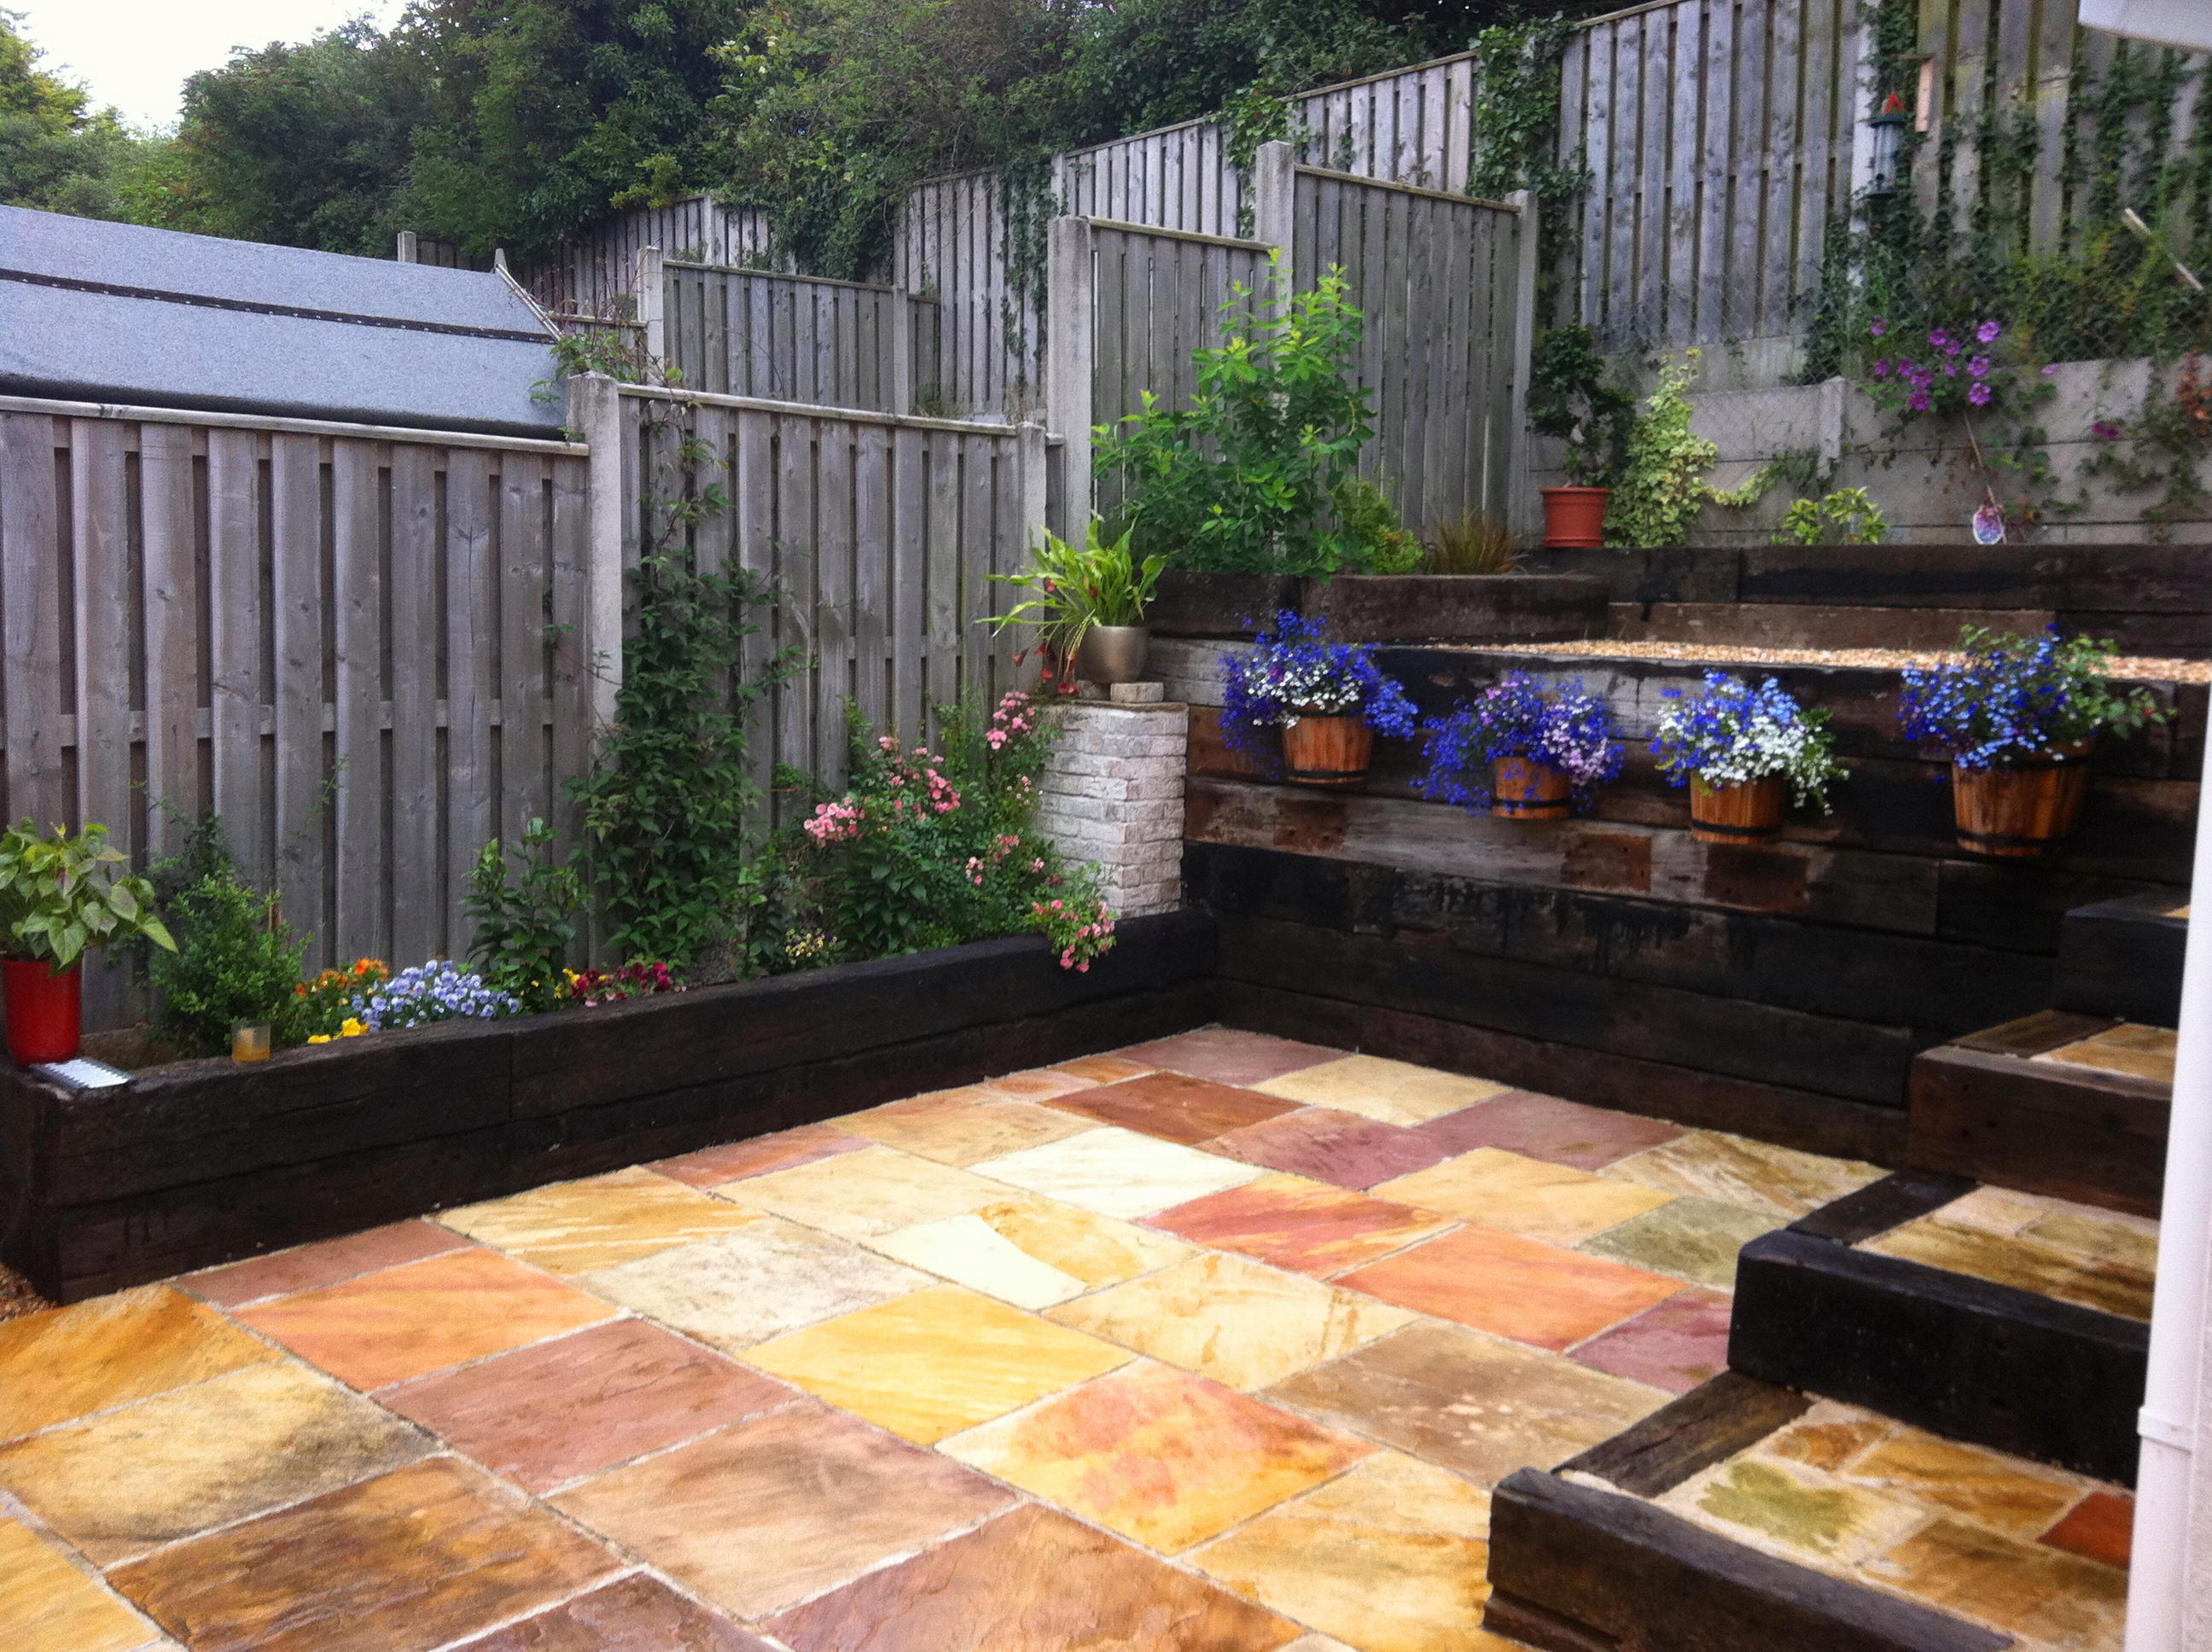 LANDSCAPE GARDENING...